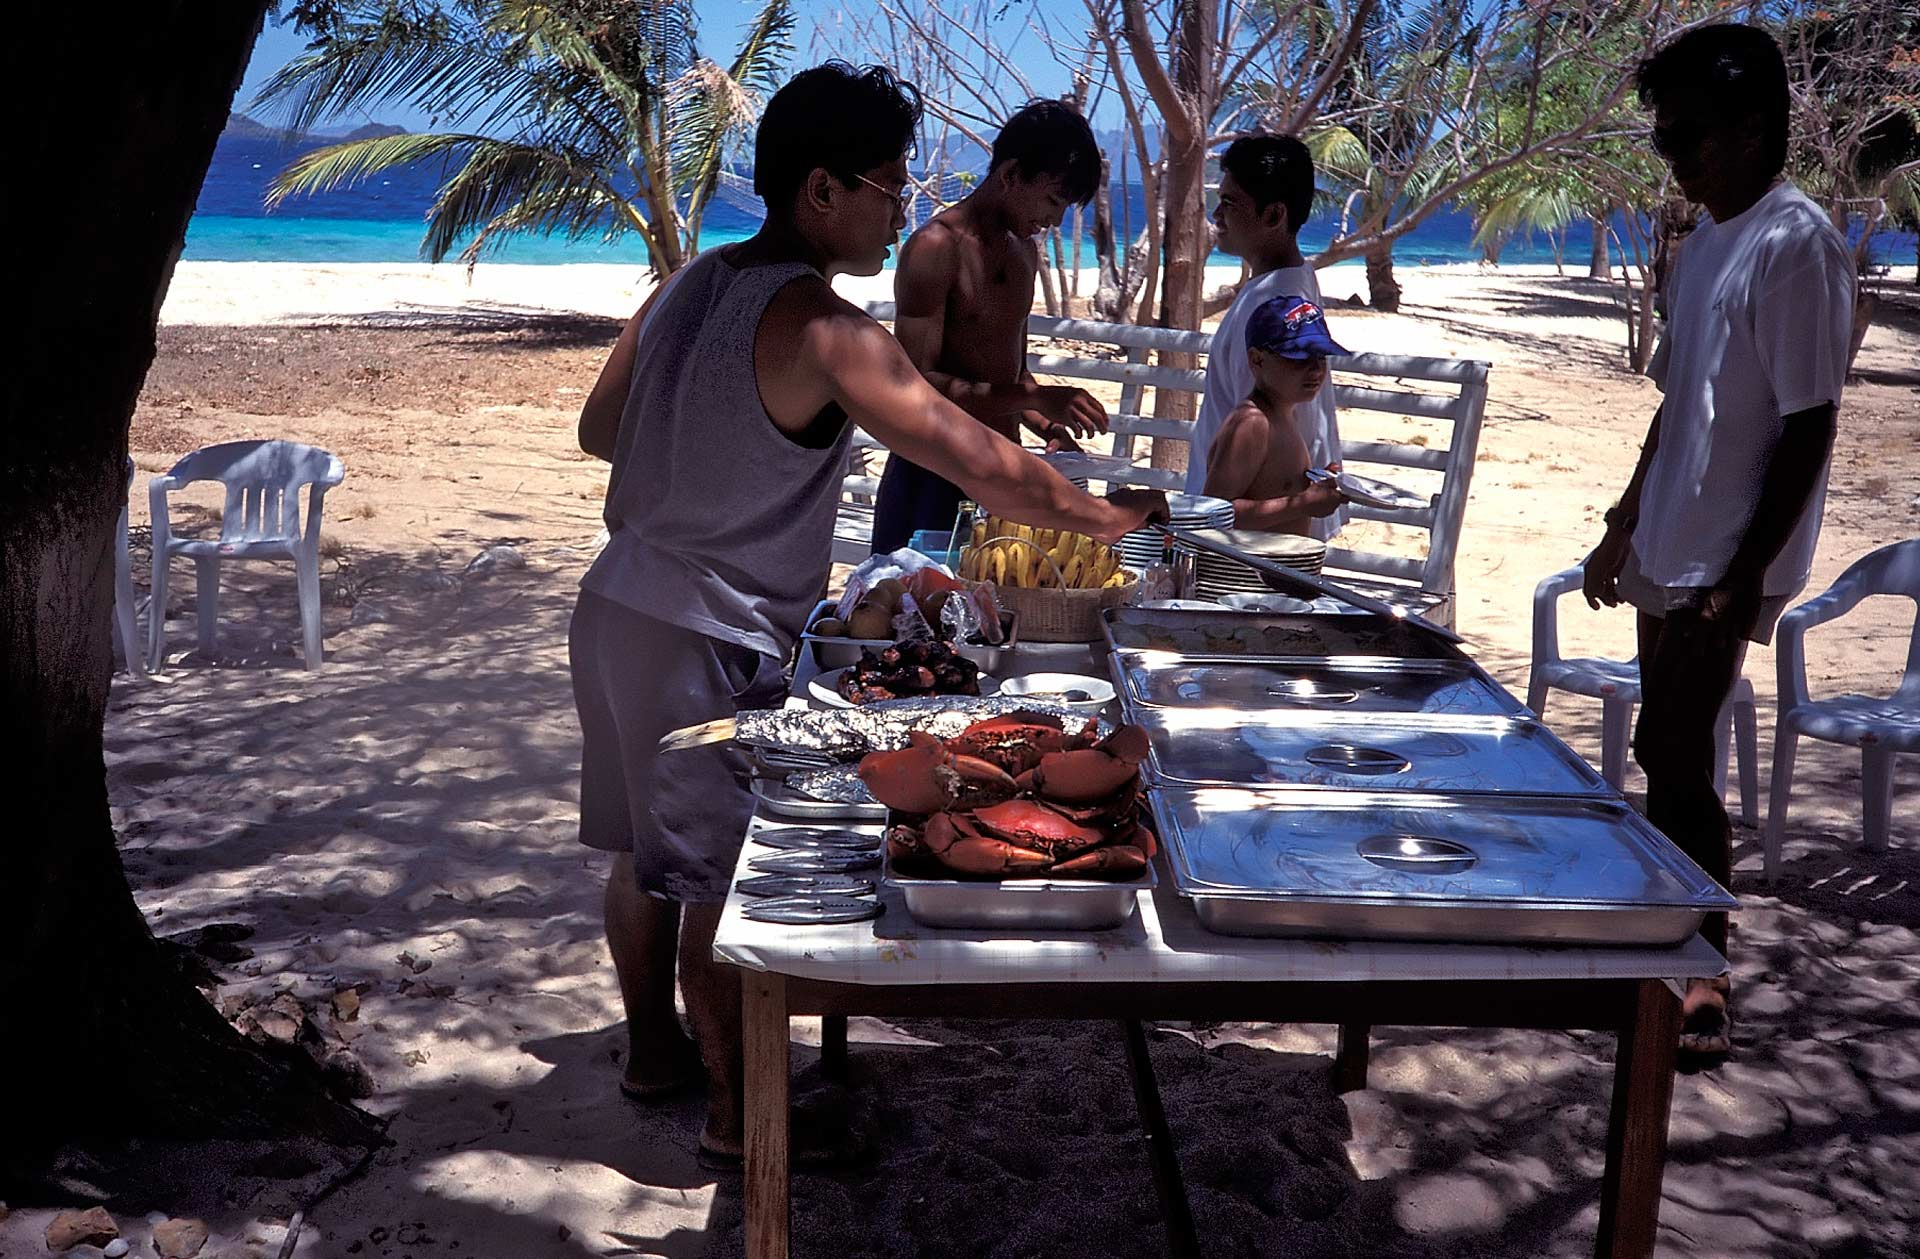 Men having a barbecue on the beach, Philippines